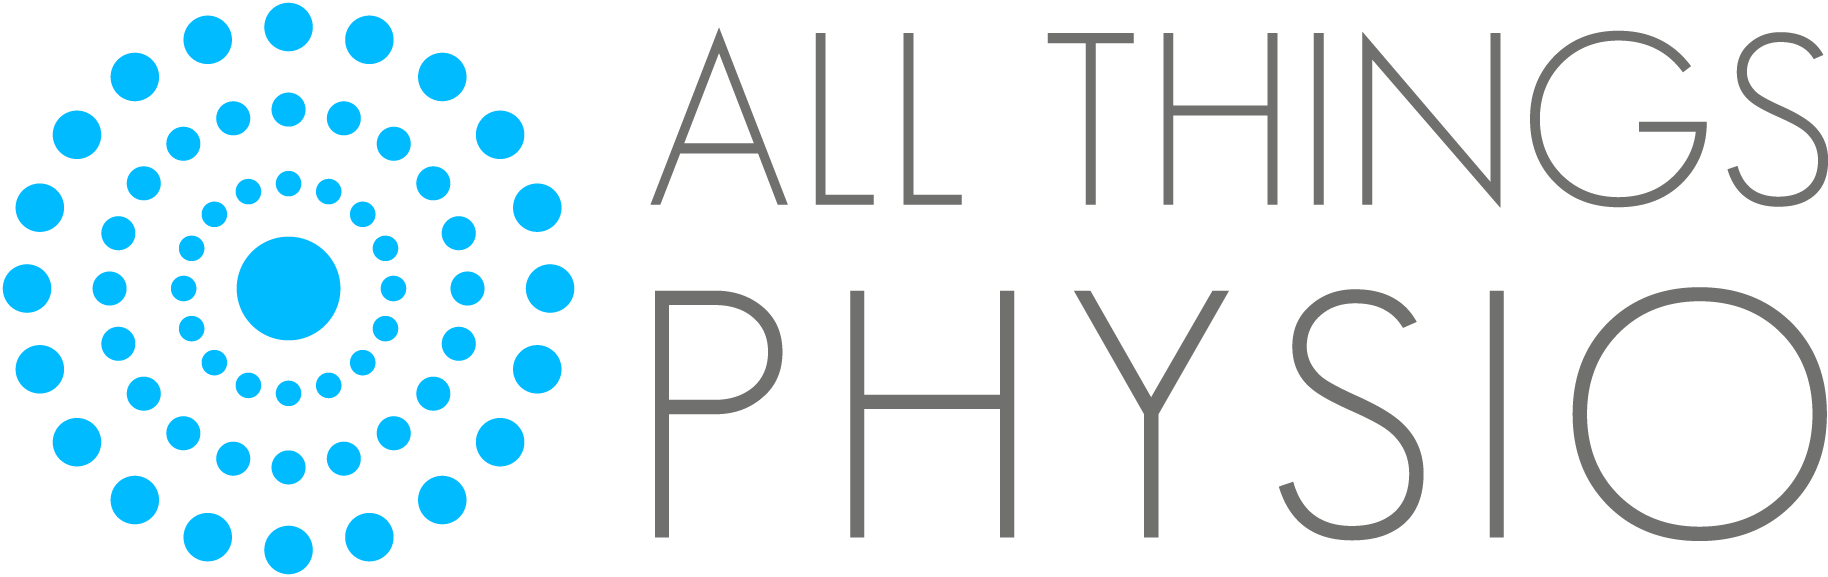 All Things Physio company logo